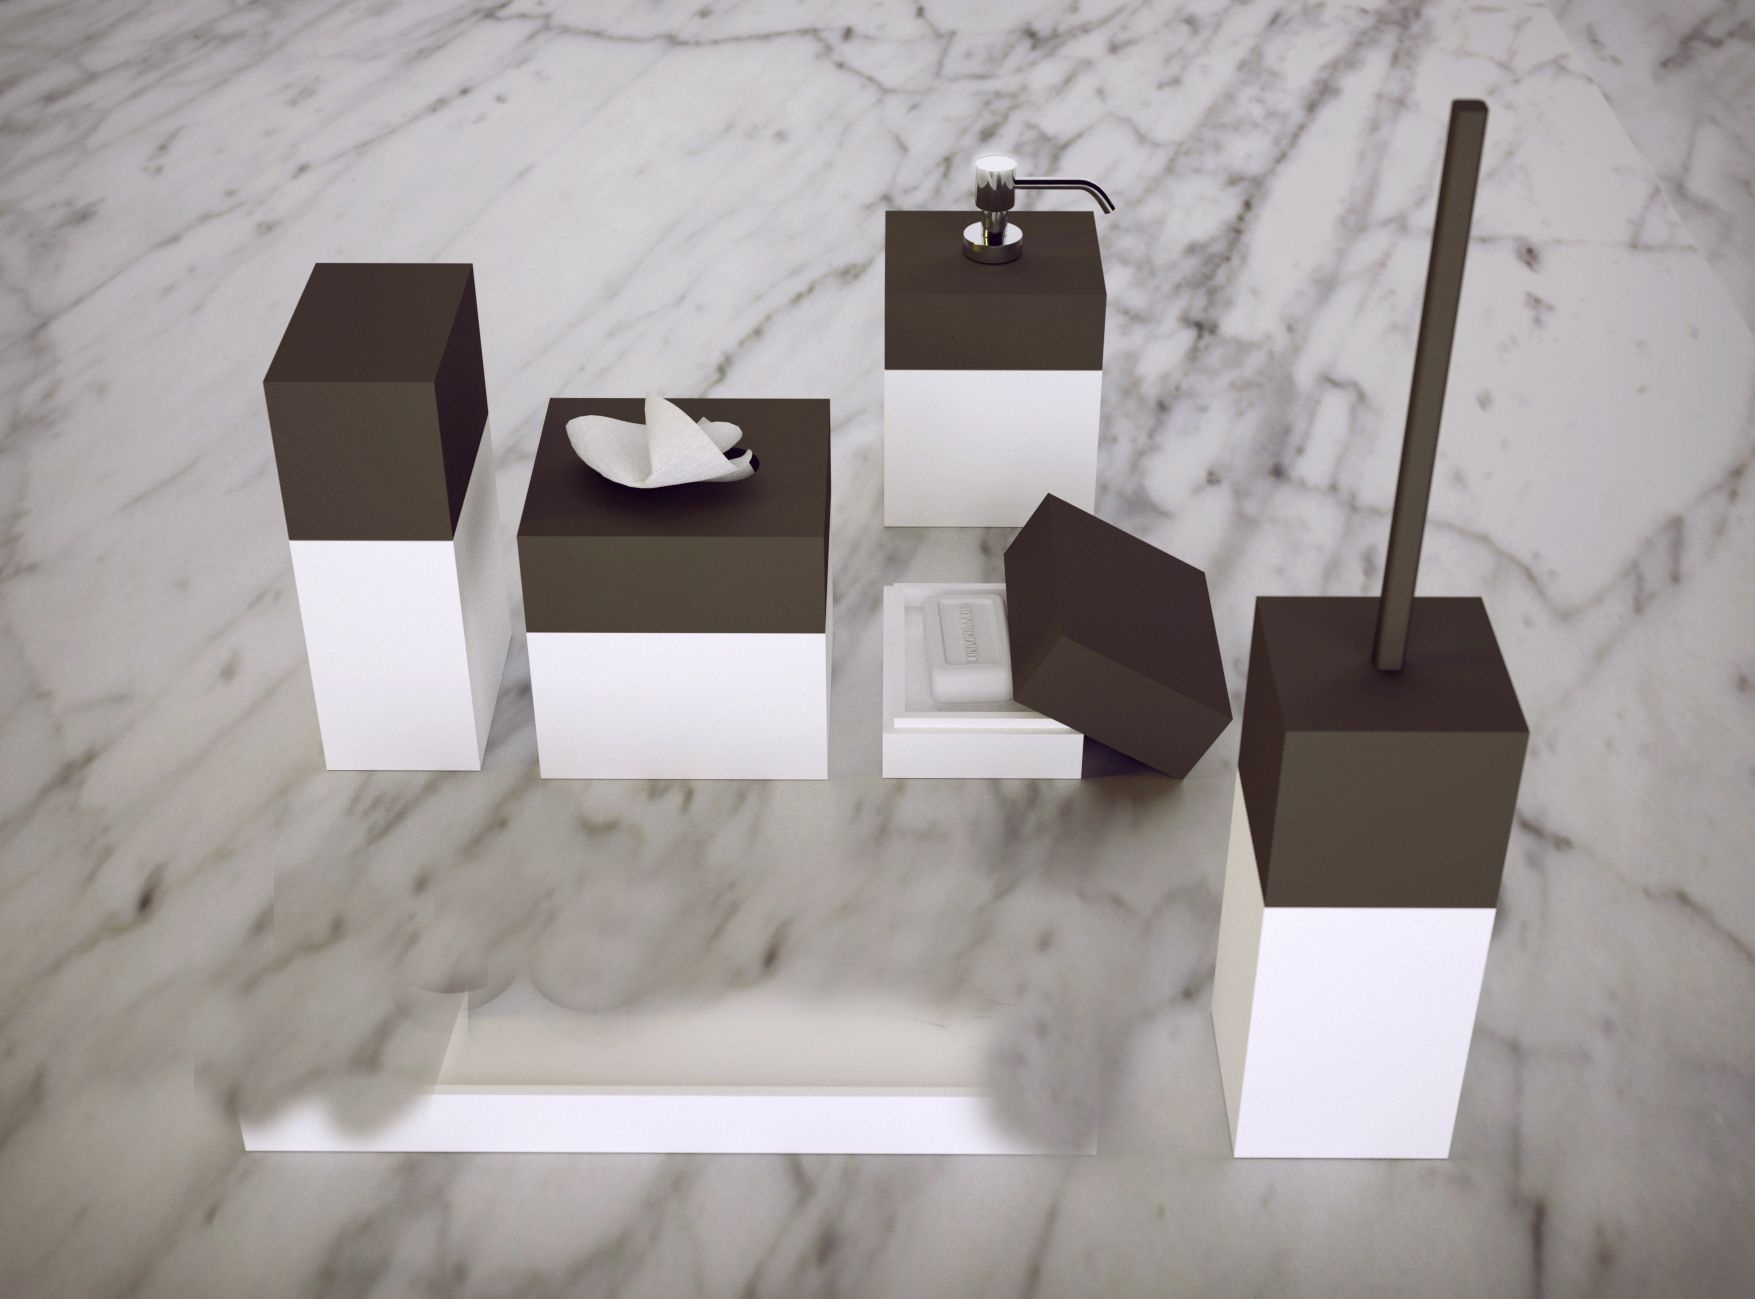 Knief K Stone Pure Bathroom Top Counter Accessories In Solid Surface White And Black A05 Modern Bathroom Accessories Interior Design